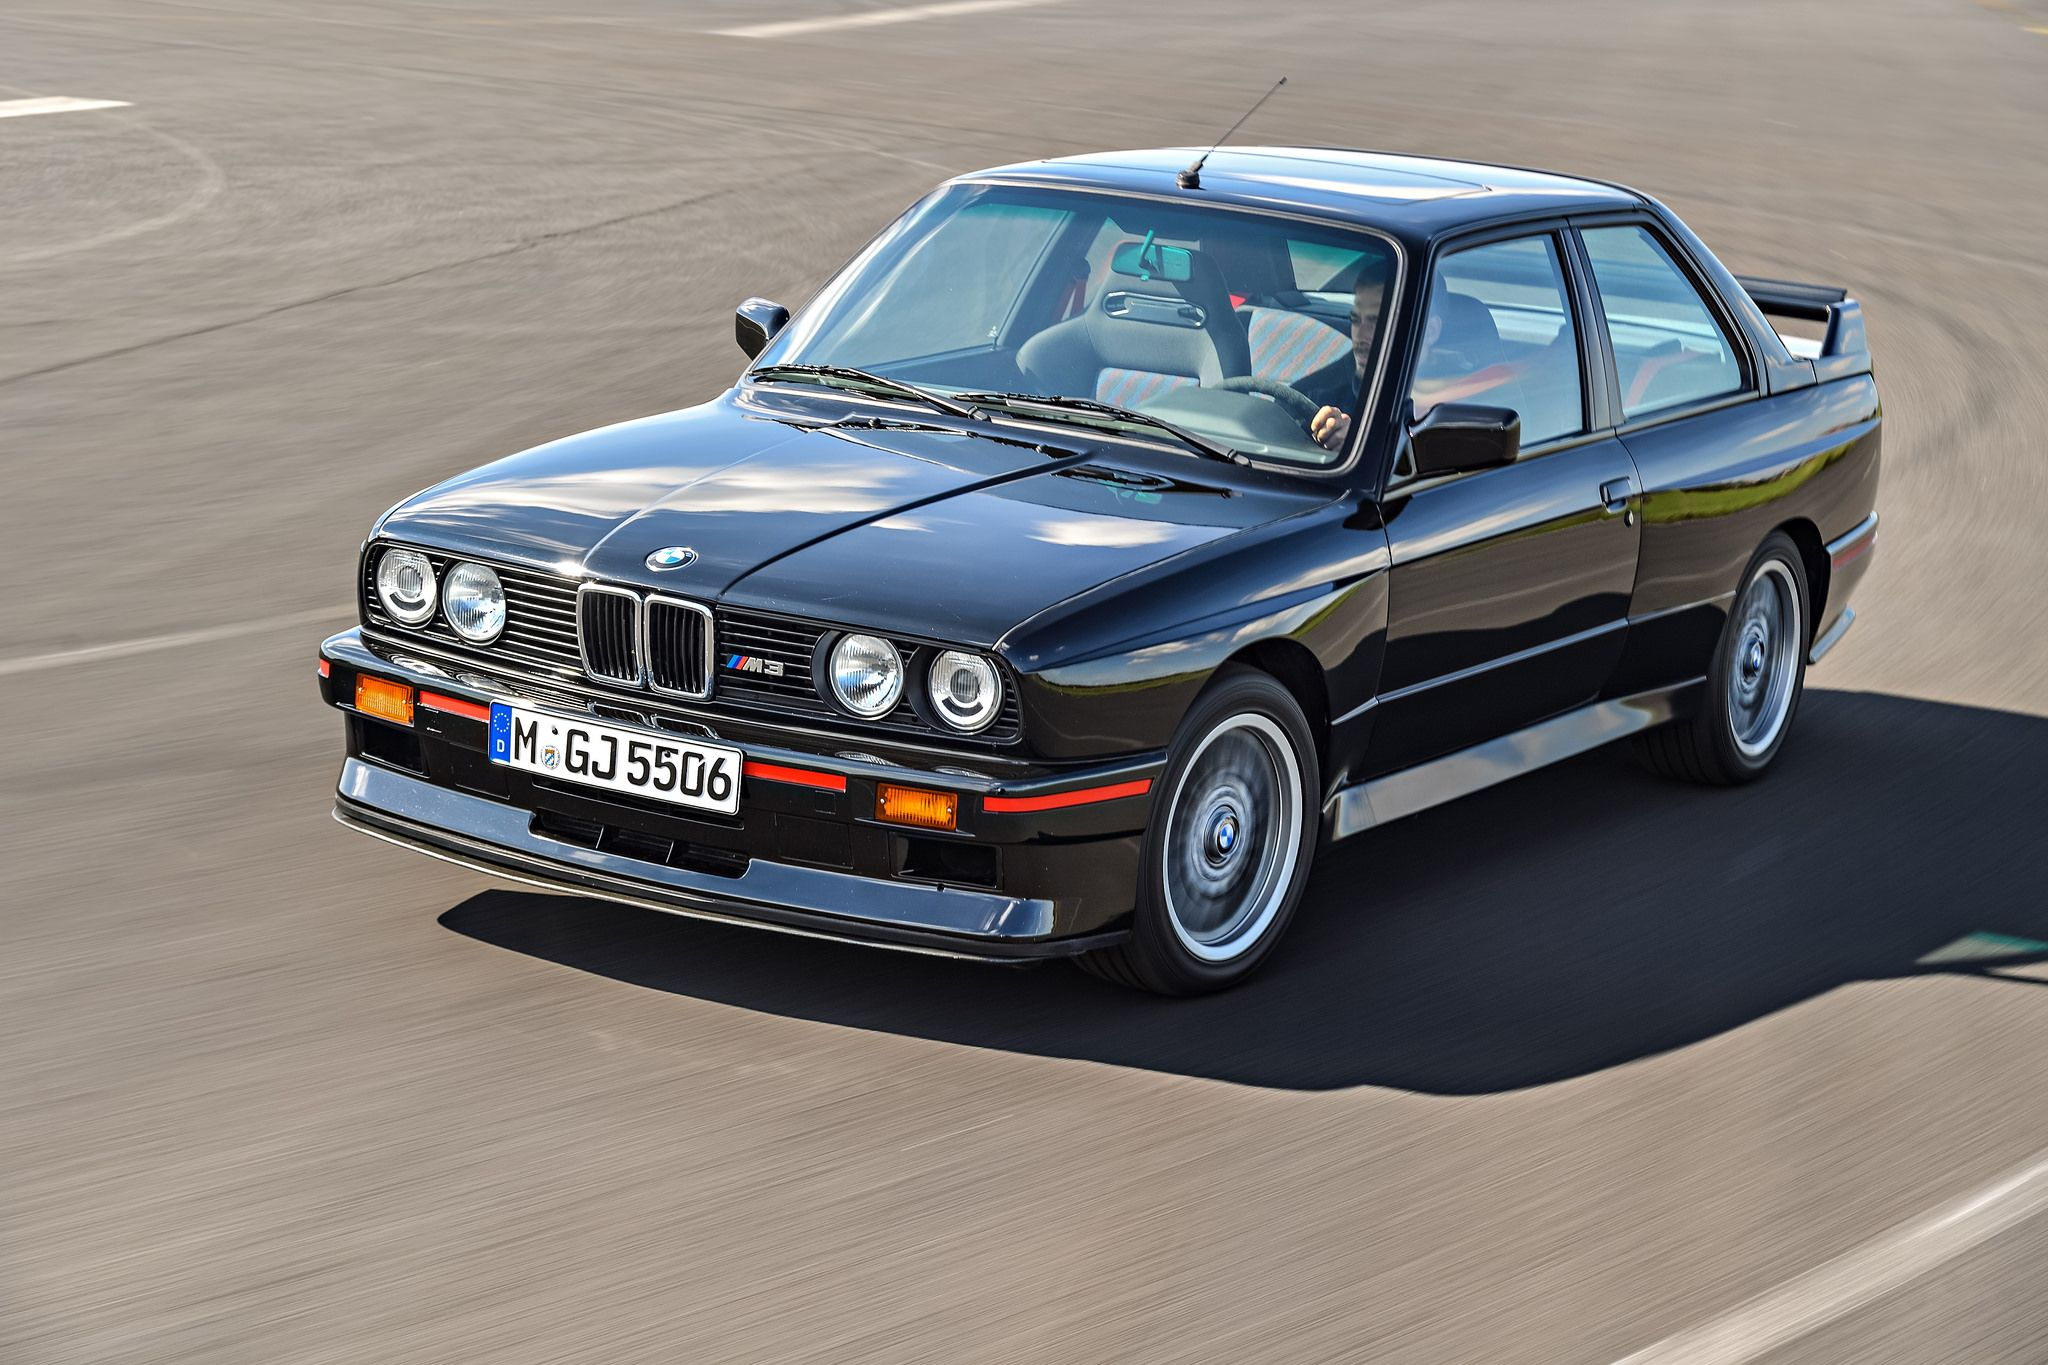 1990 Bmw M3 Sport Evolution E30 Driven Bmw Models Bmw M3 Bmw